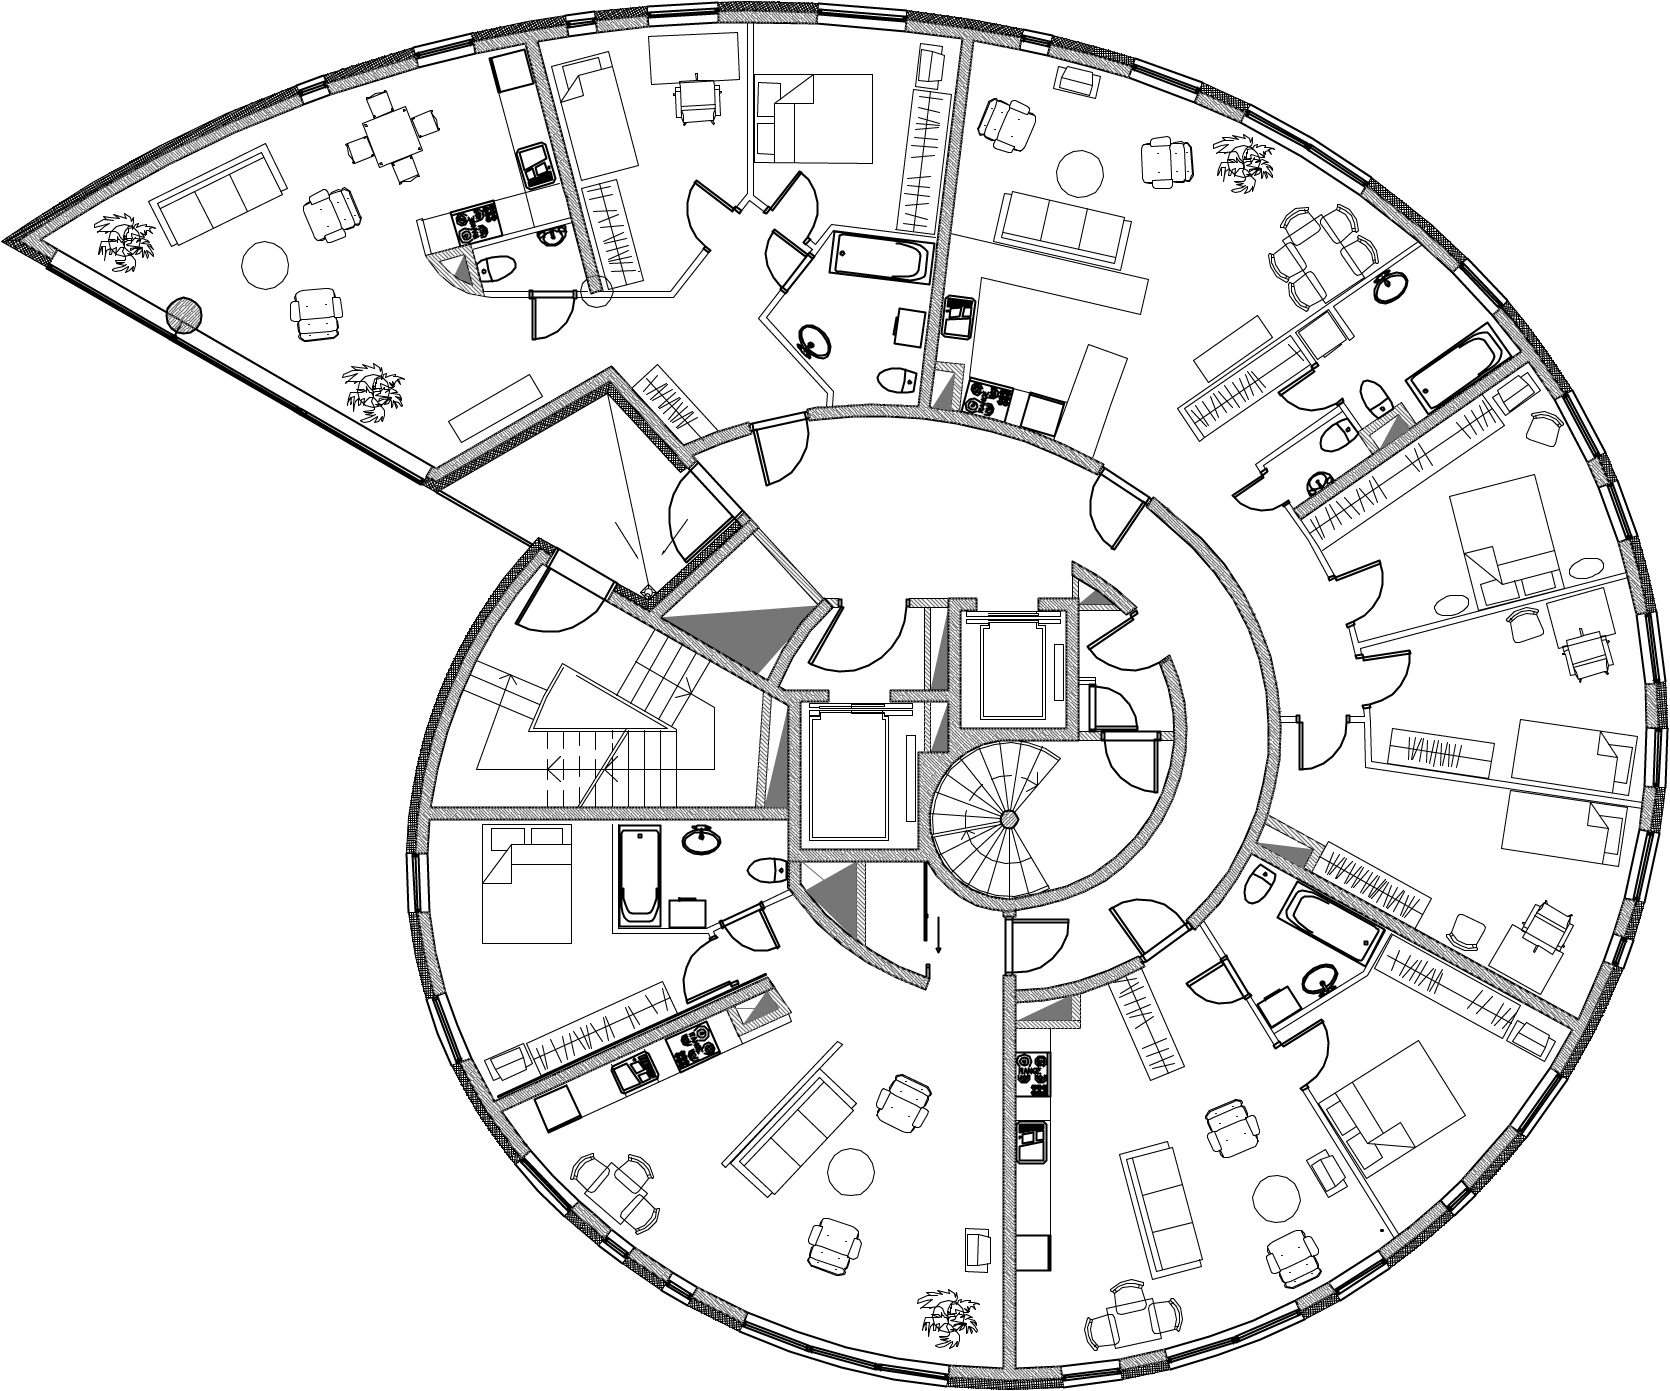 Architecture photography snailtower k nnapu padrik Round house plans floor plans